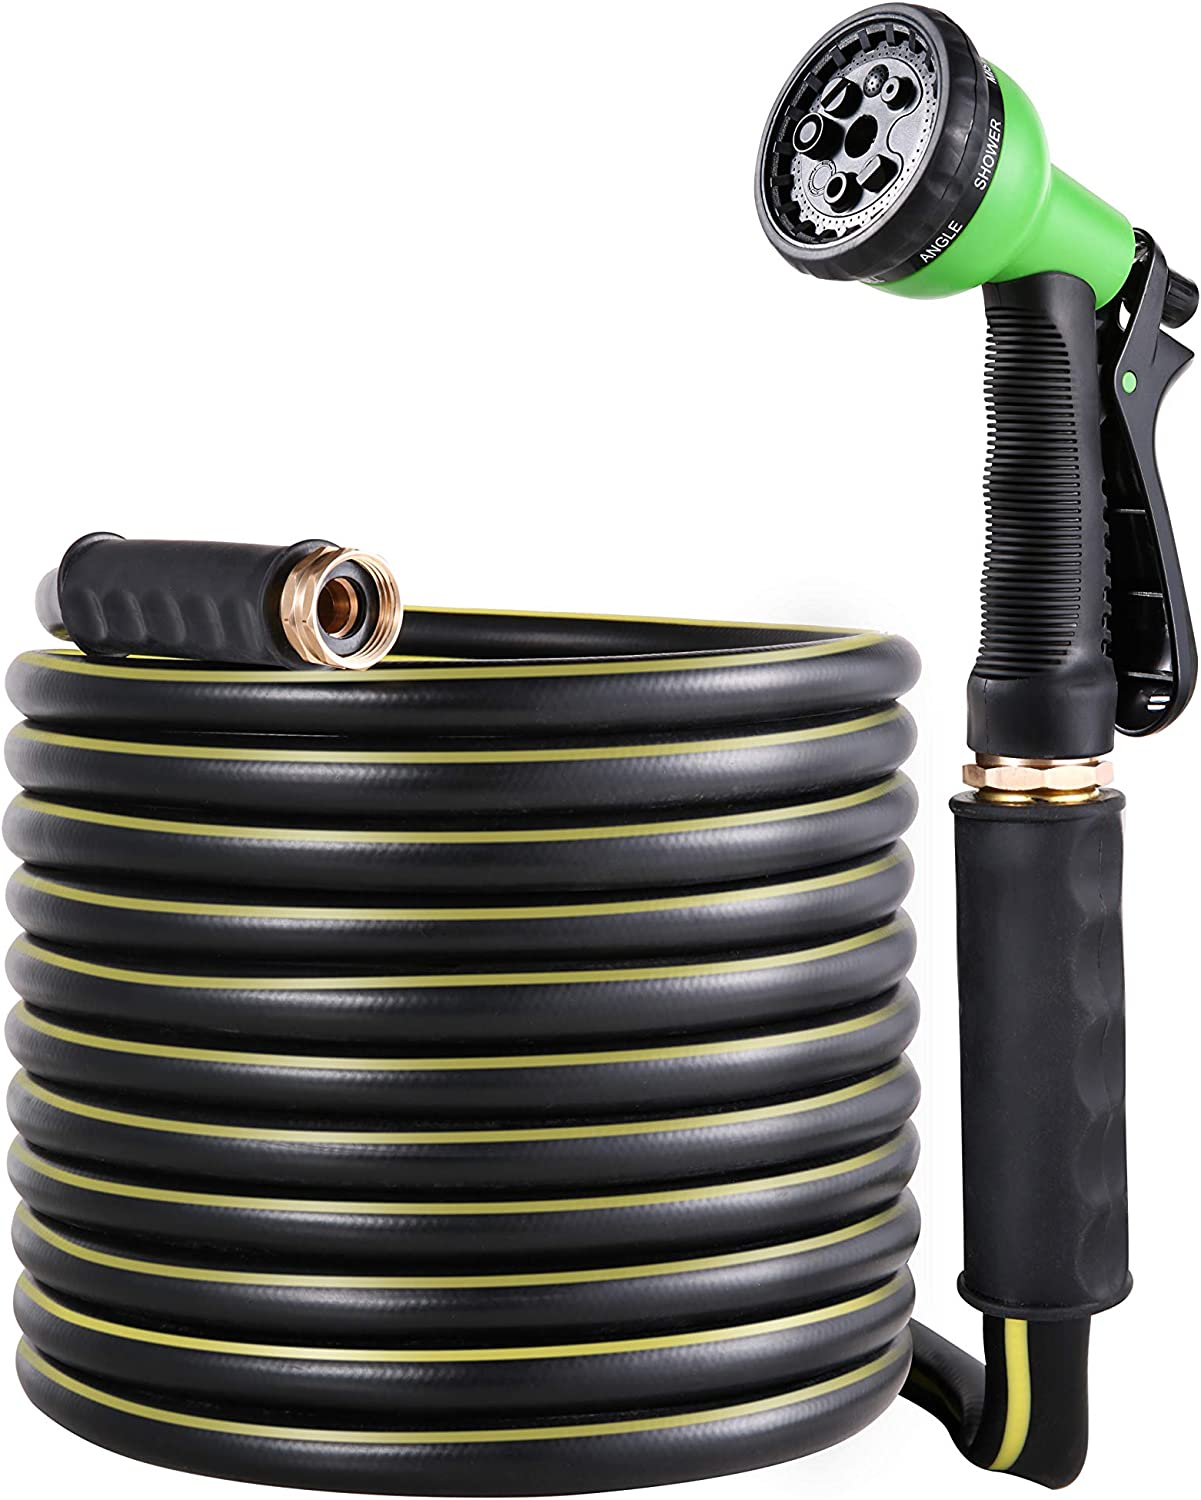 BUYOOKAY Garden Hose 30ft,Water Hose with 5/8'' Diameter Bronze Interface Saves Water Great for Car Wash,Garden Watering,Patio Lawn House Cleaning with 7 Function Spray Nozzle Flat Hose (5/8'' x 30ft)